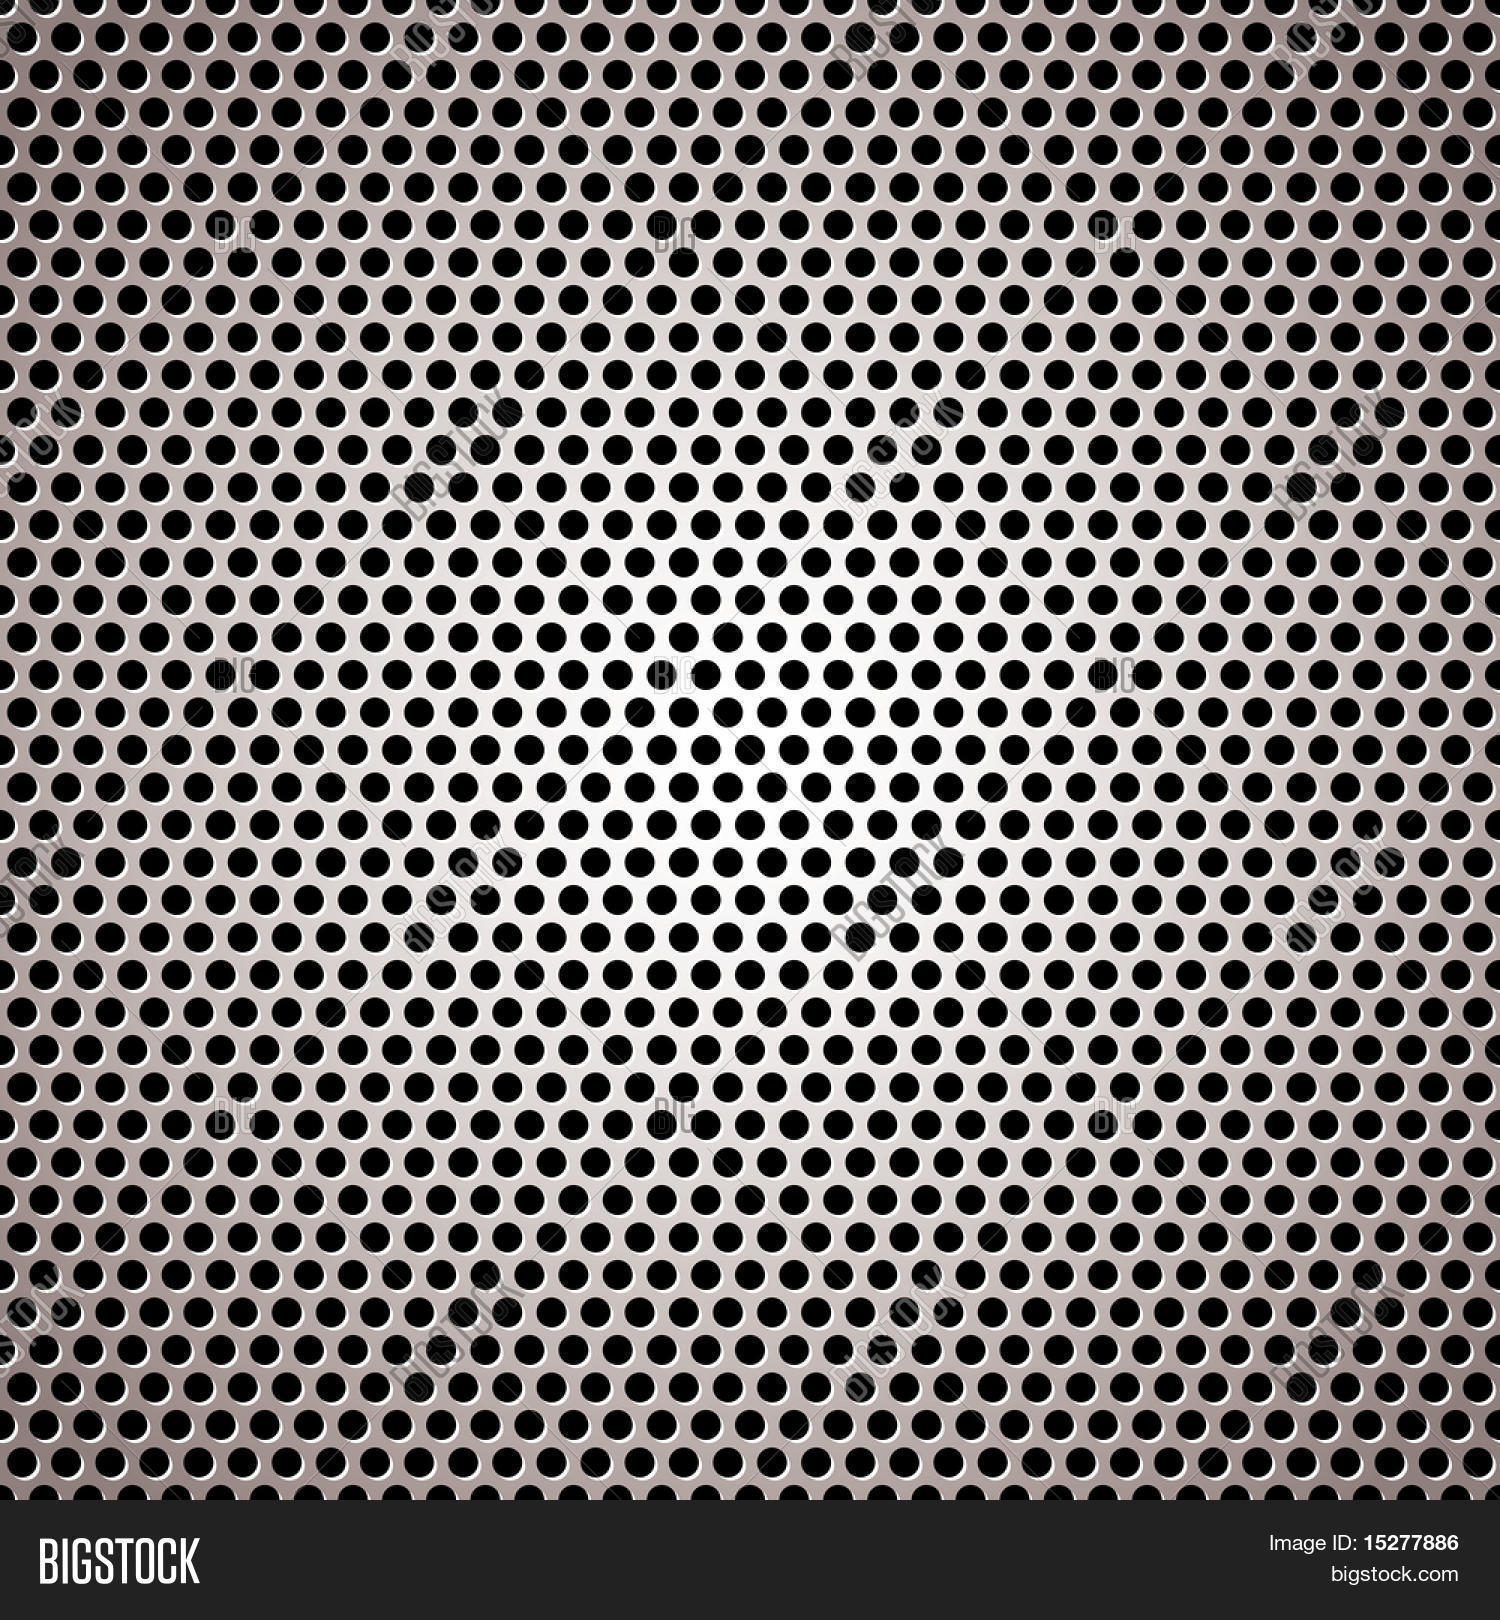 Light Silver Metal Background Vector  for Truck Light Texture  242xkb